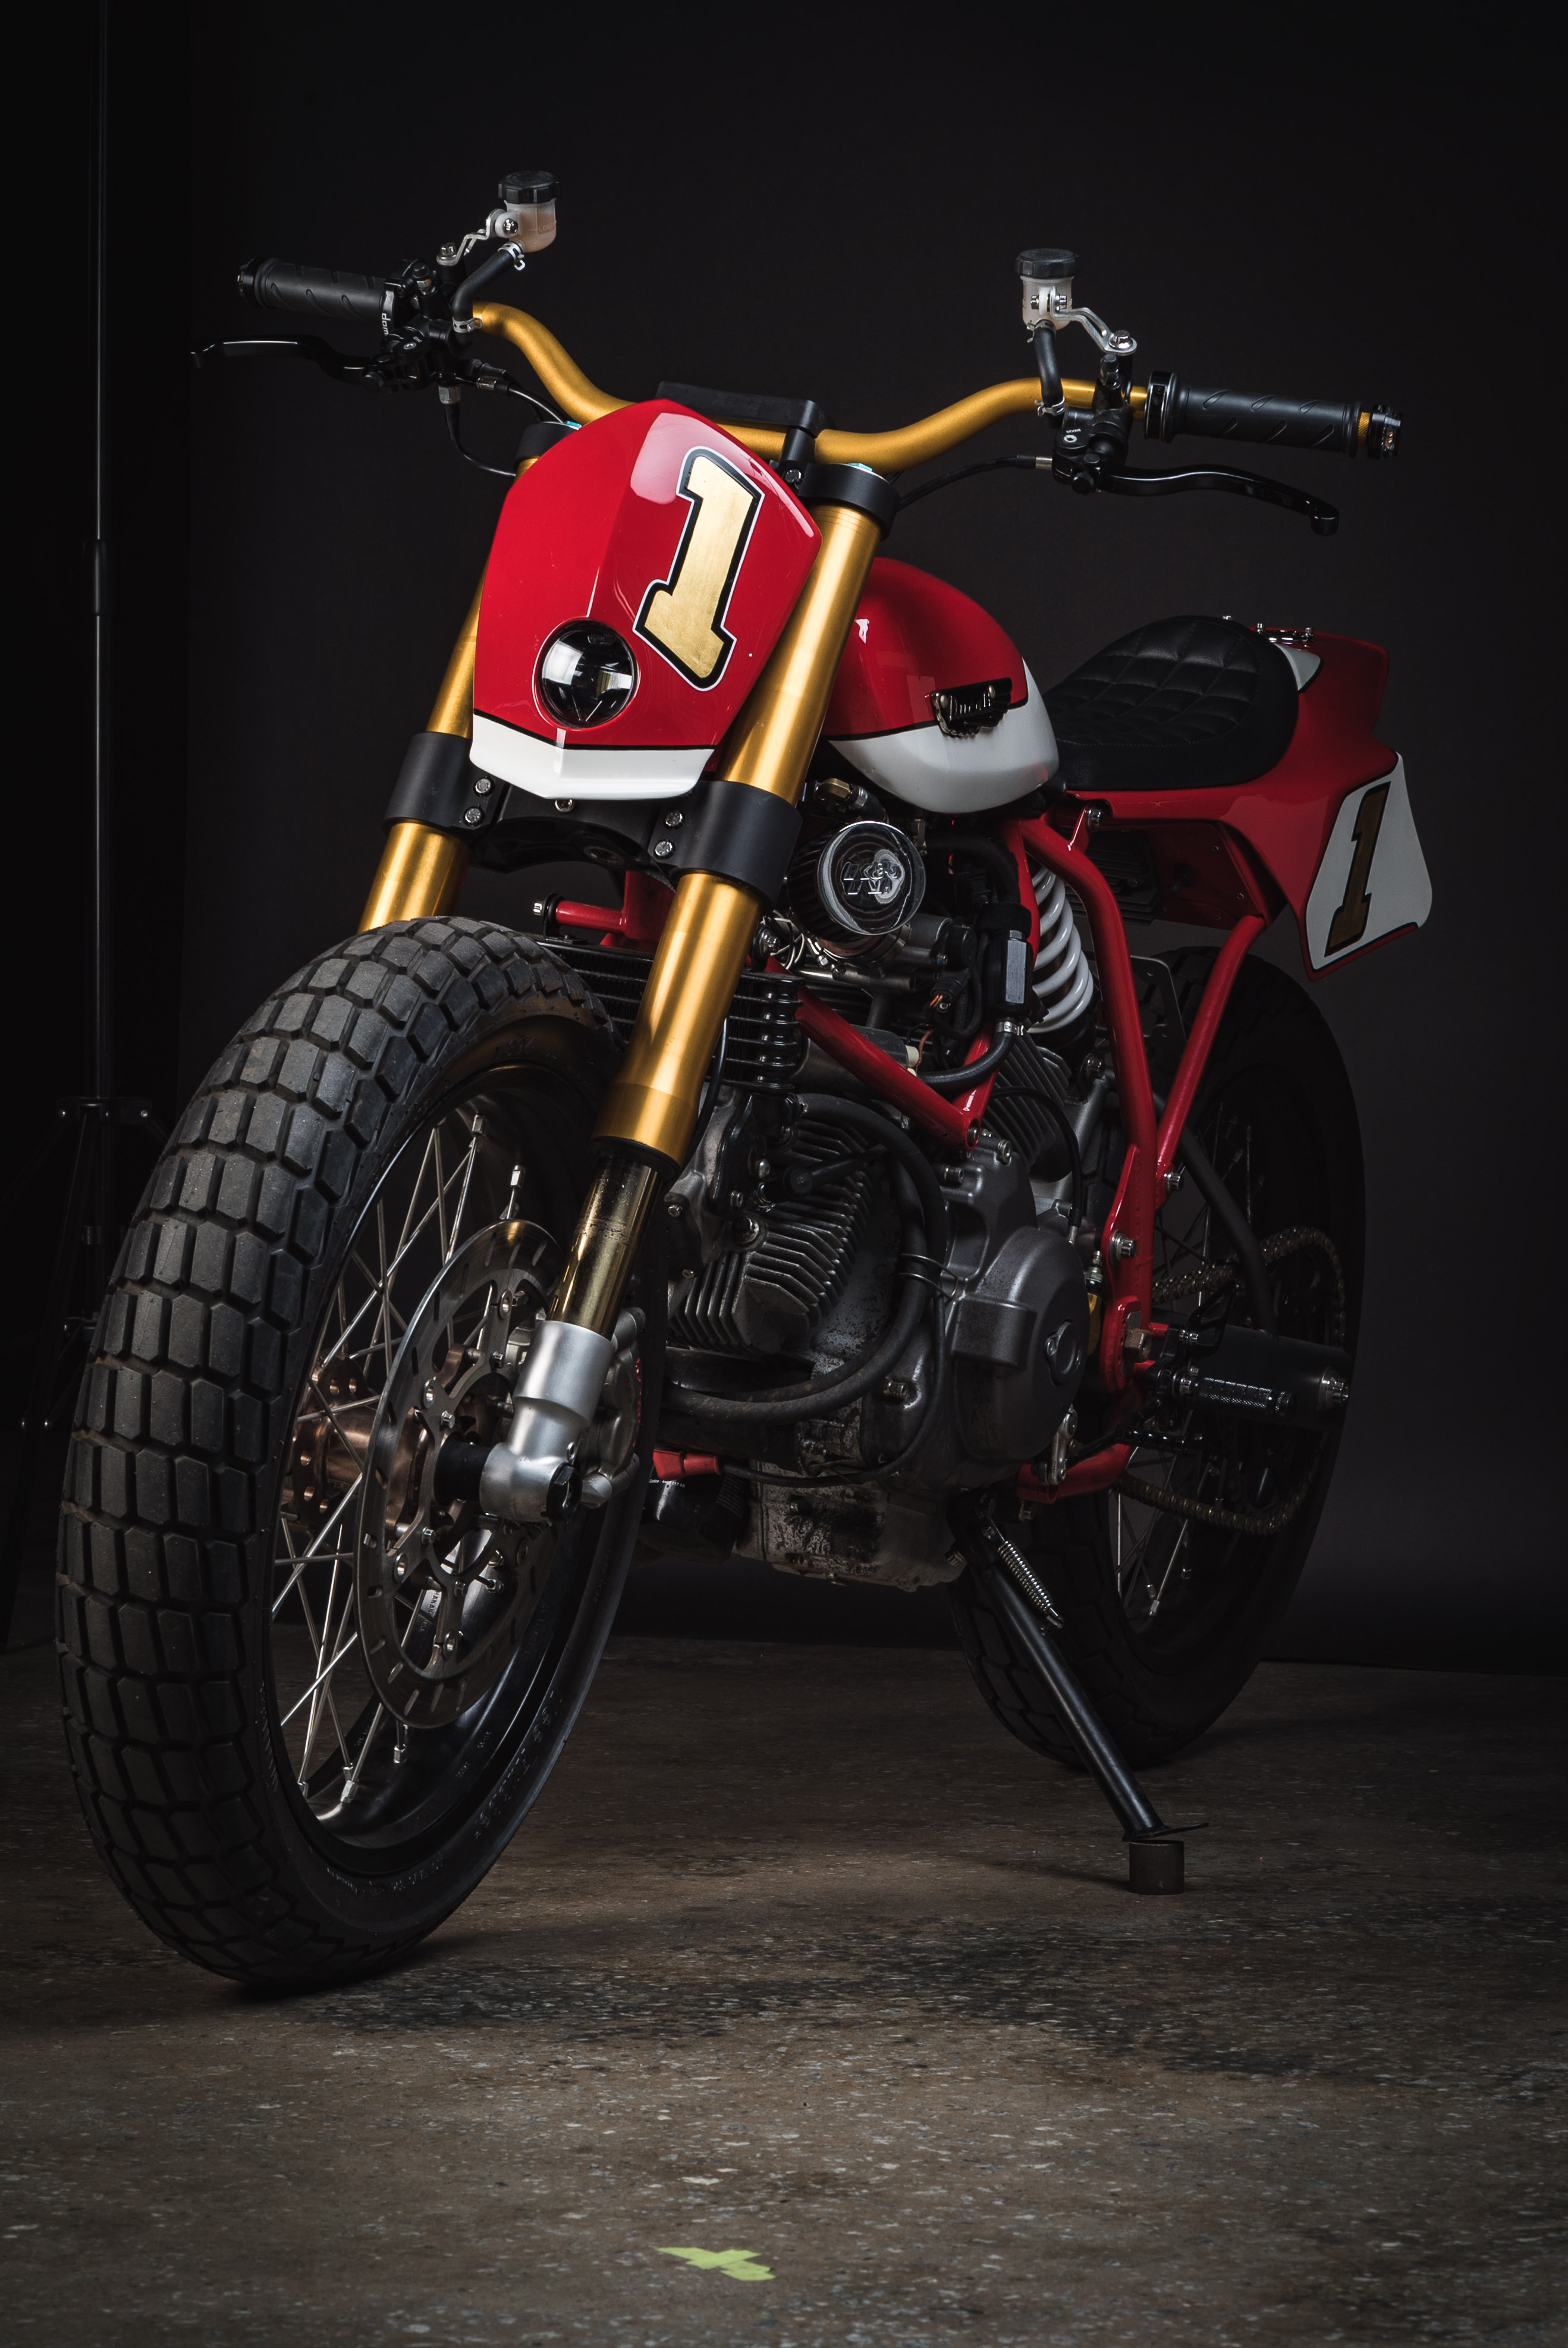 Fuller Moto Ducati Tracker - Ohlins suspension